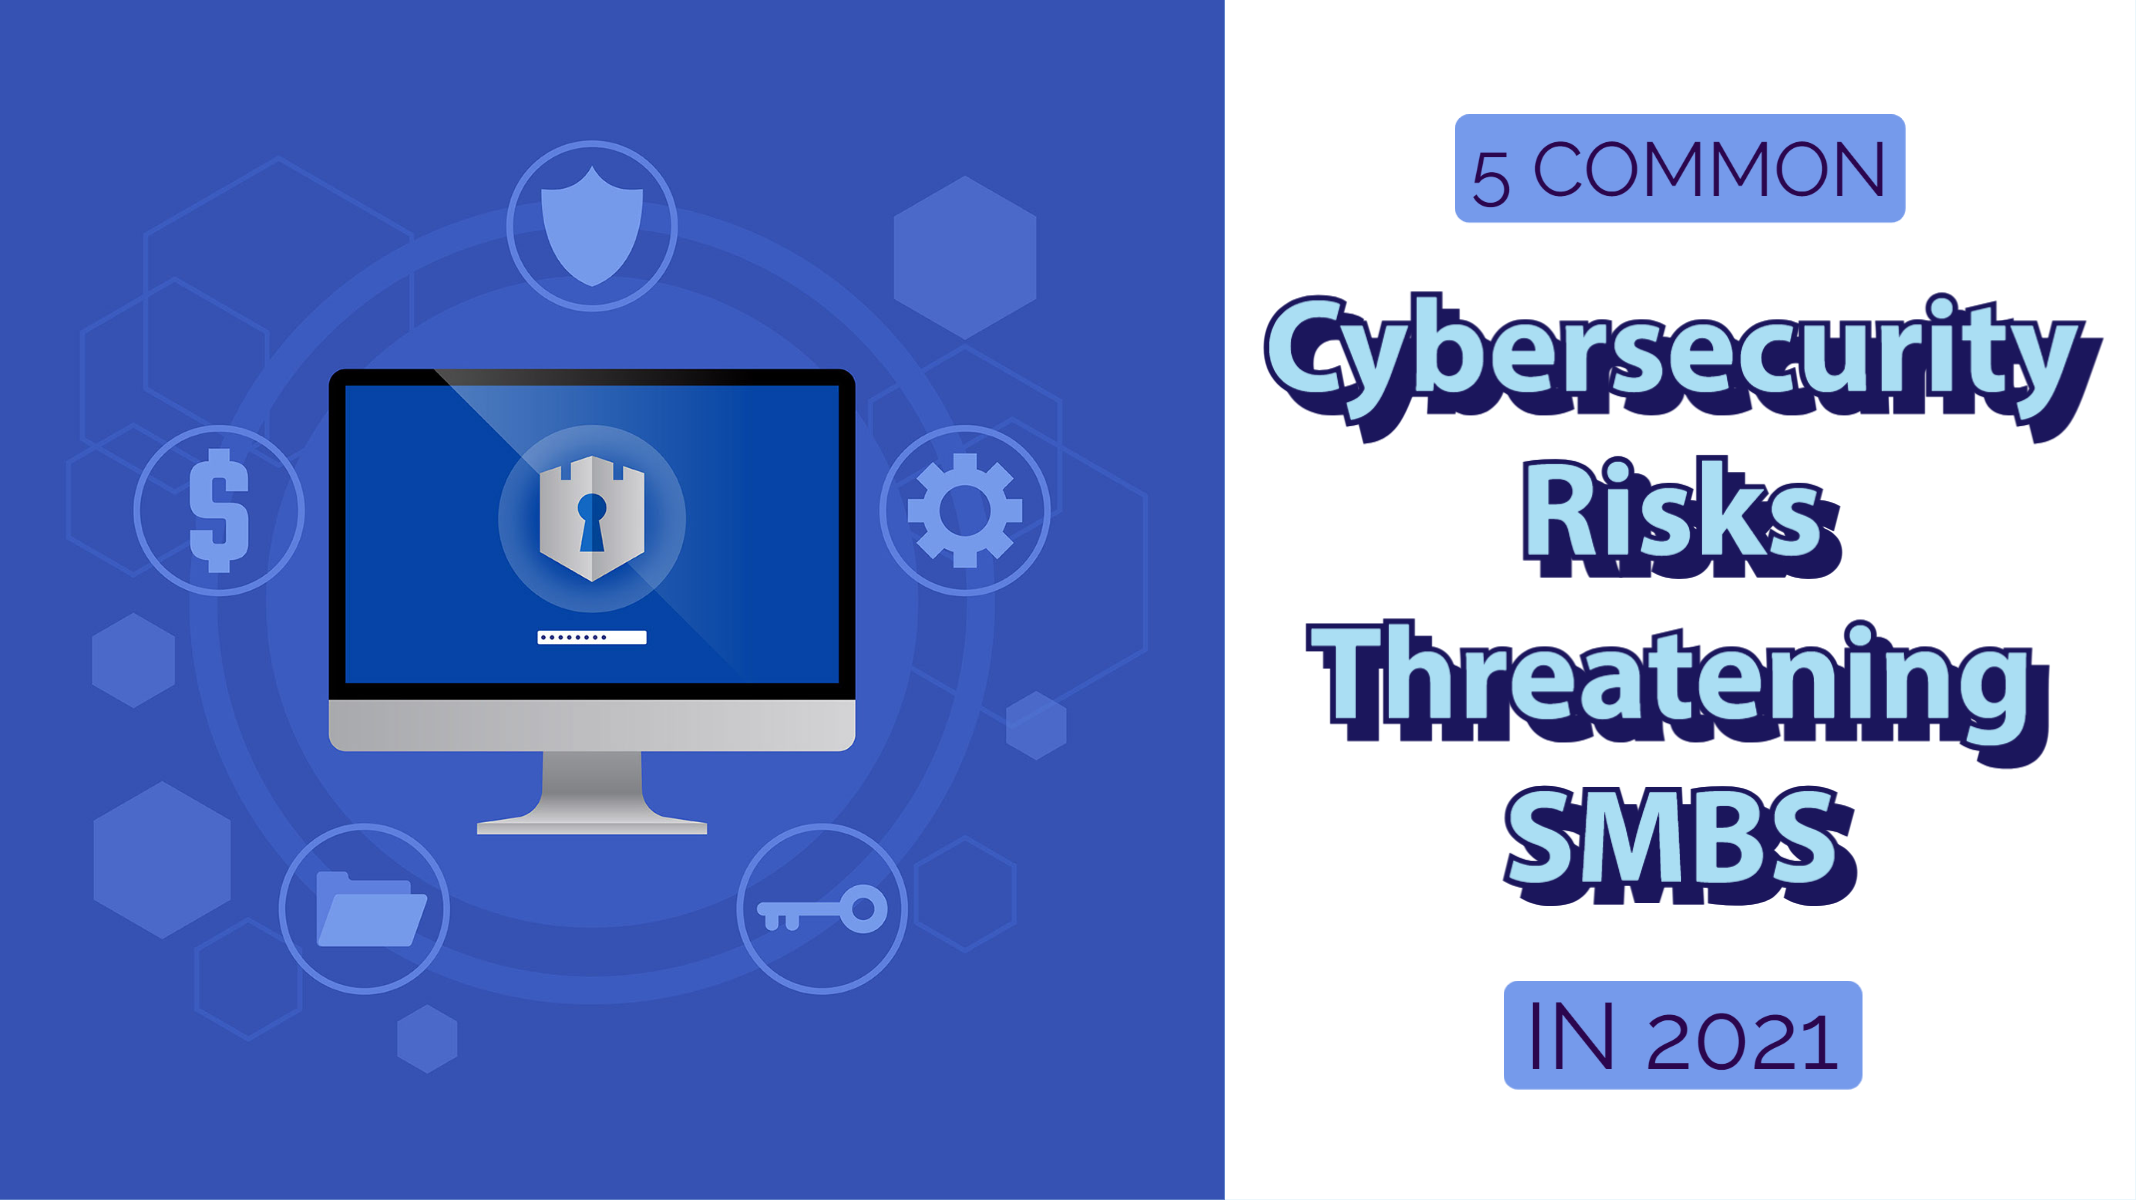 5 Common Cybersecurity Risks Threatening SMBs in 2021